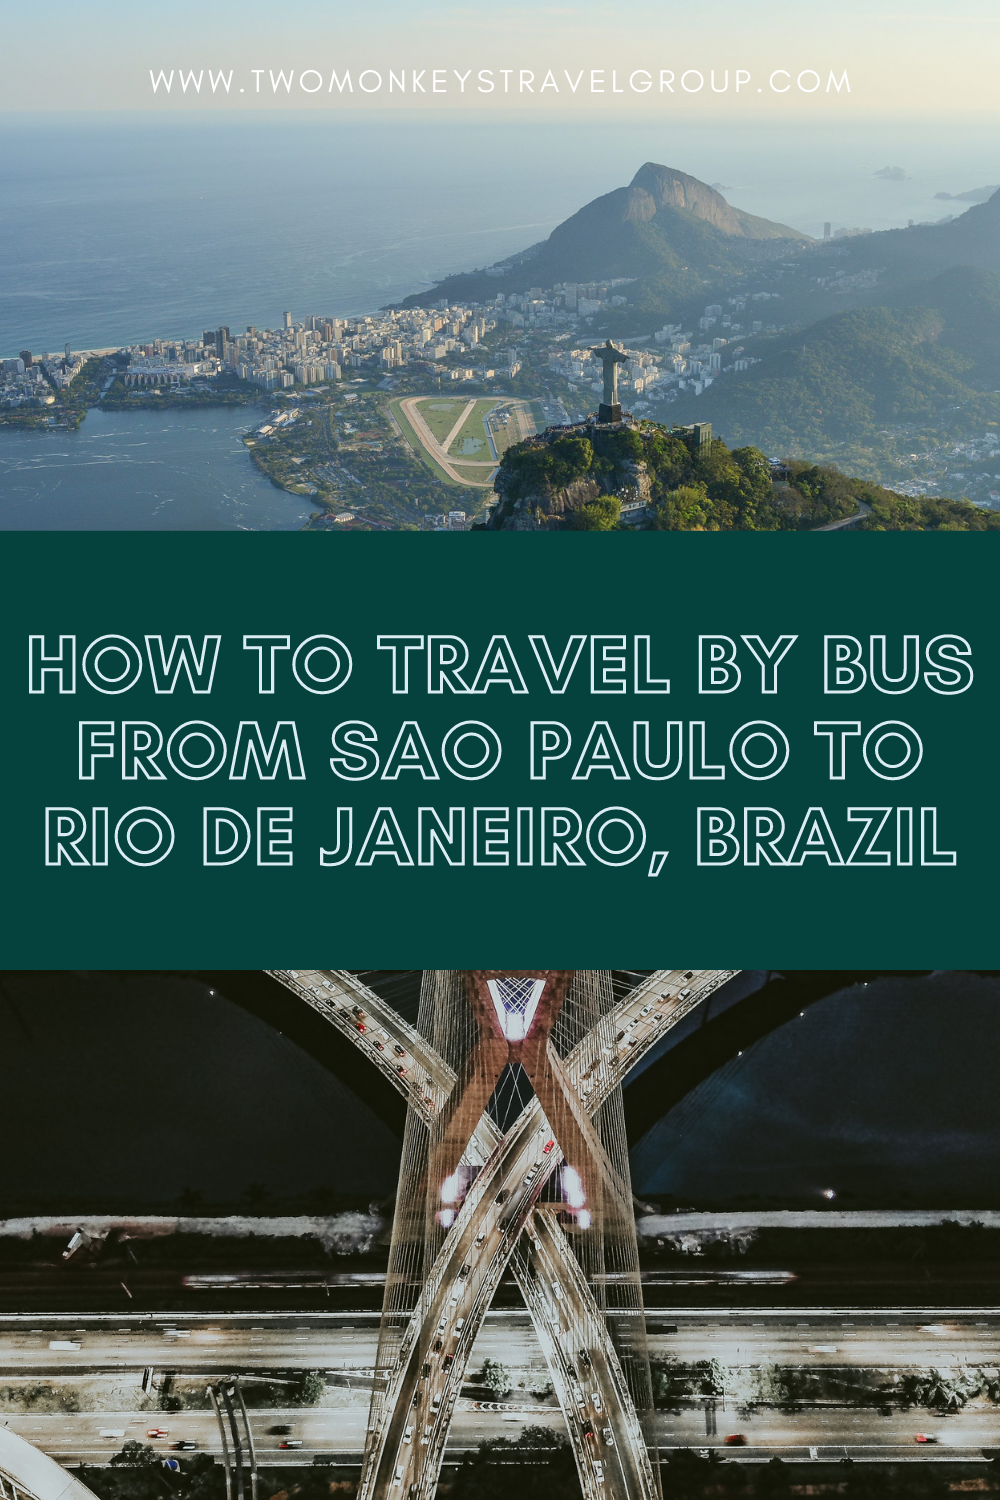 How To Travel by Bus from Sao Paulo to Rio de Janeiro, Brazil [and vice versa]